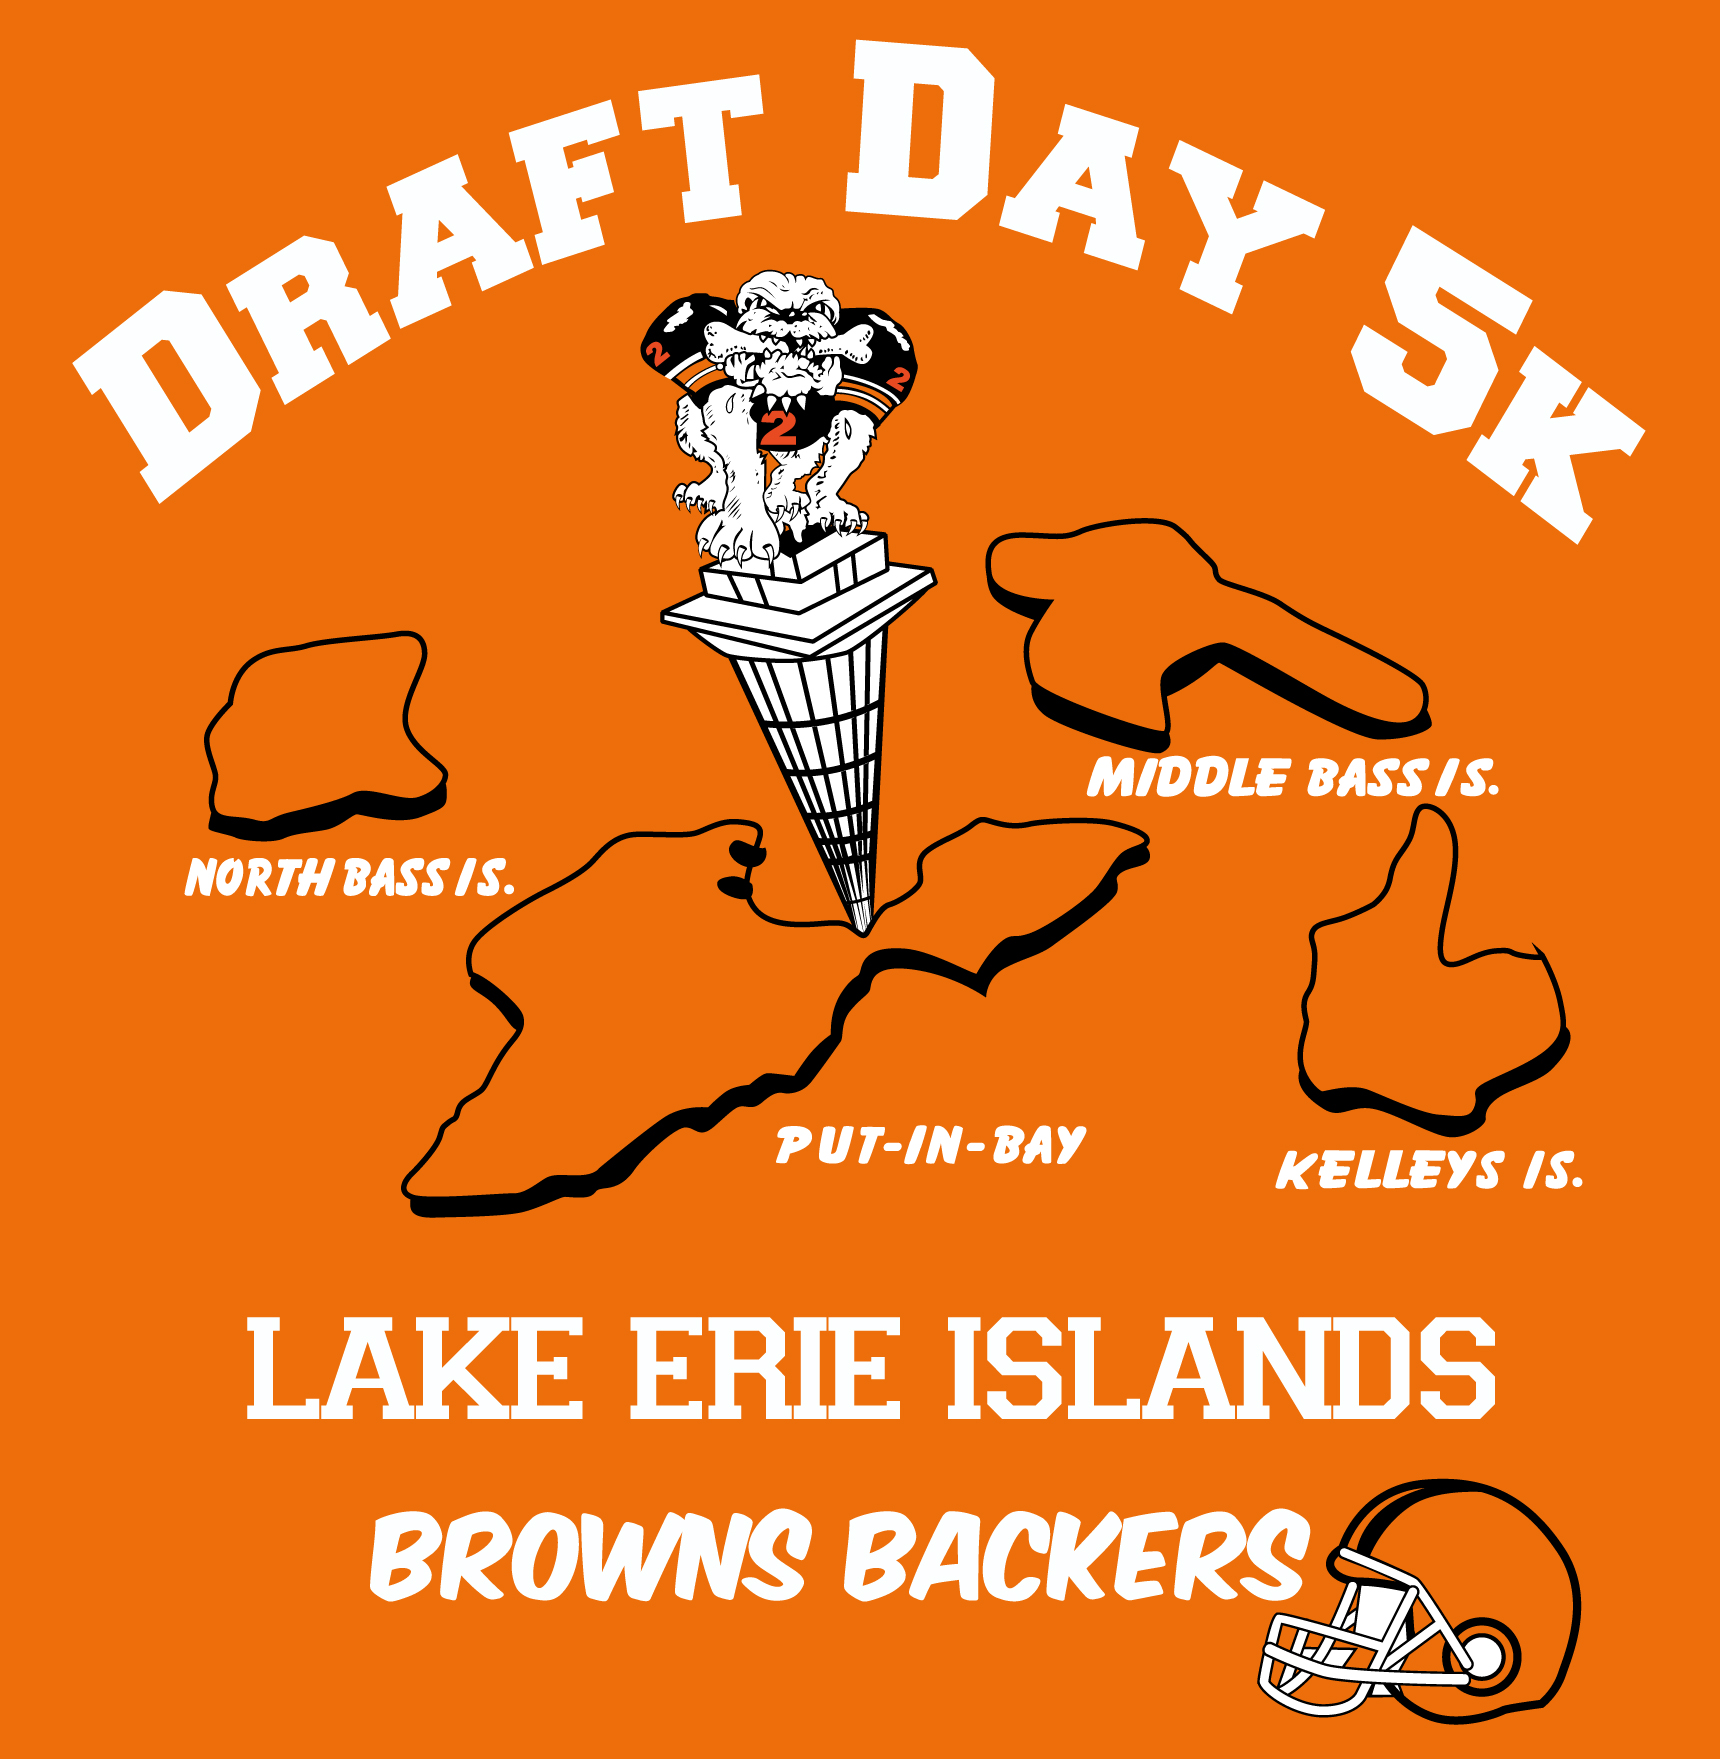 draftday5k